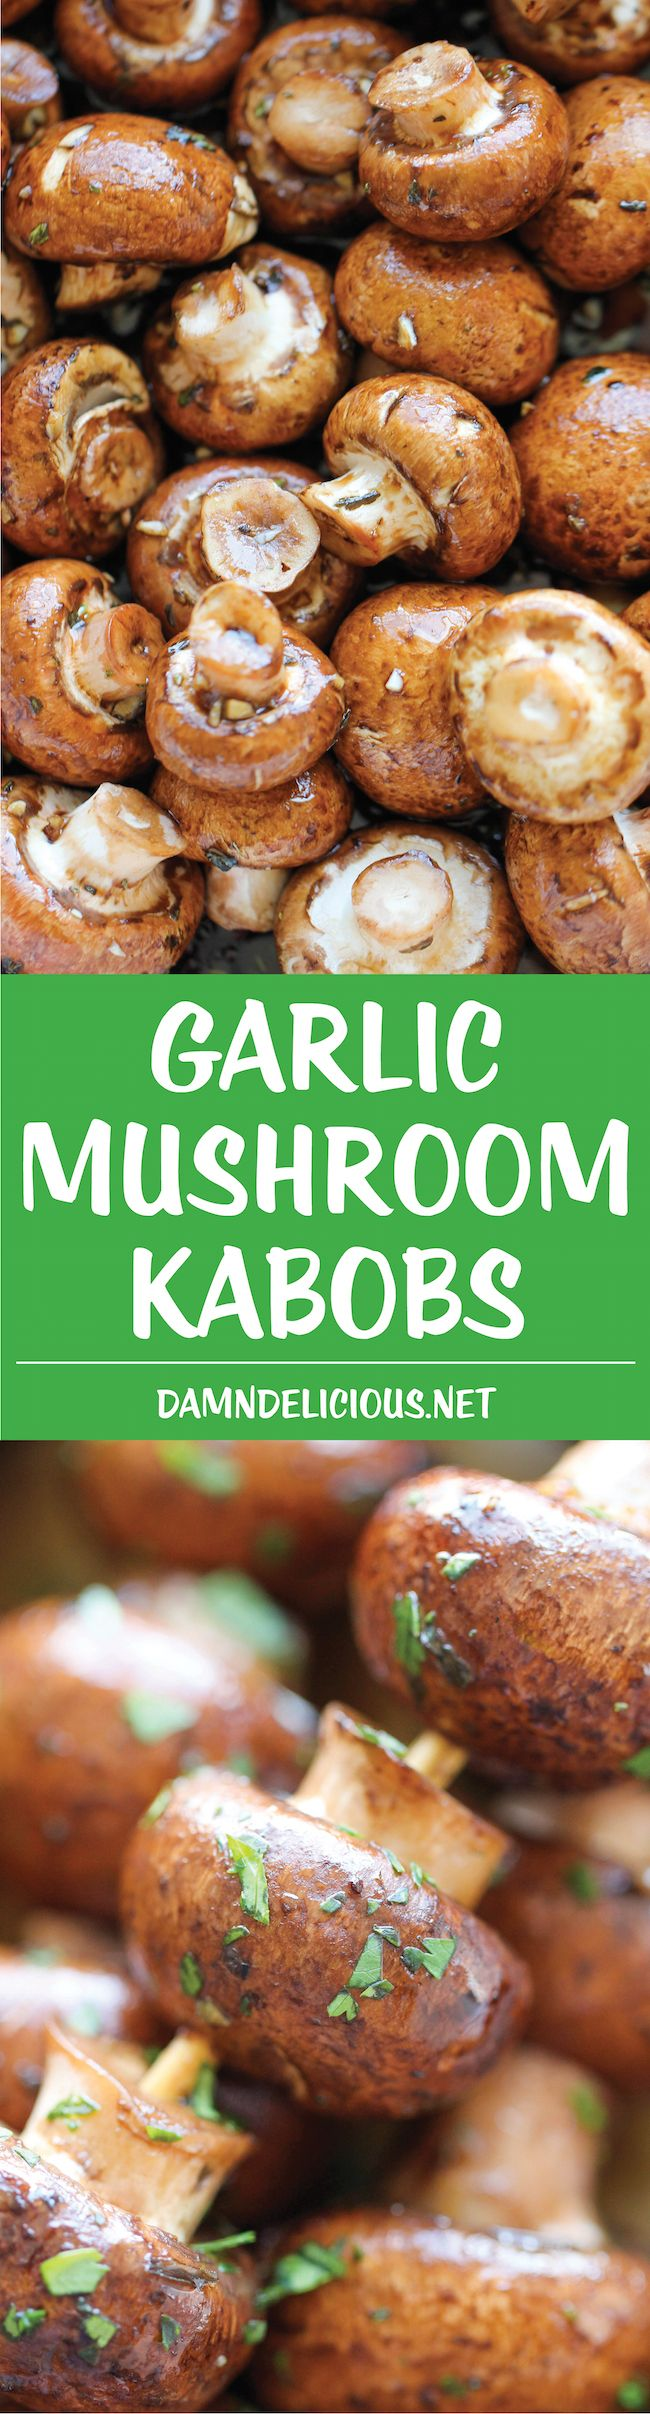 Garlic Mushroom Kabobs - The best and easiest mushrooms ever! It's so good, you'll want to make it every single day of the week!